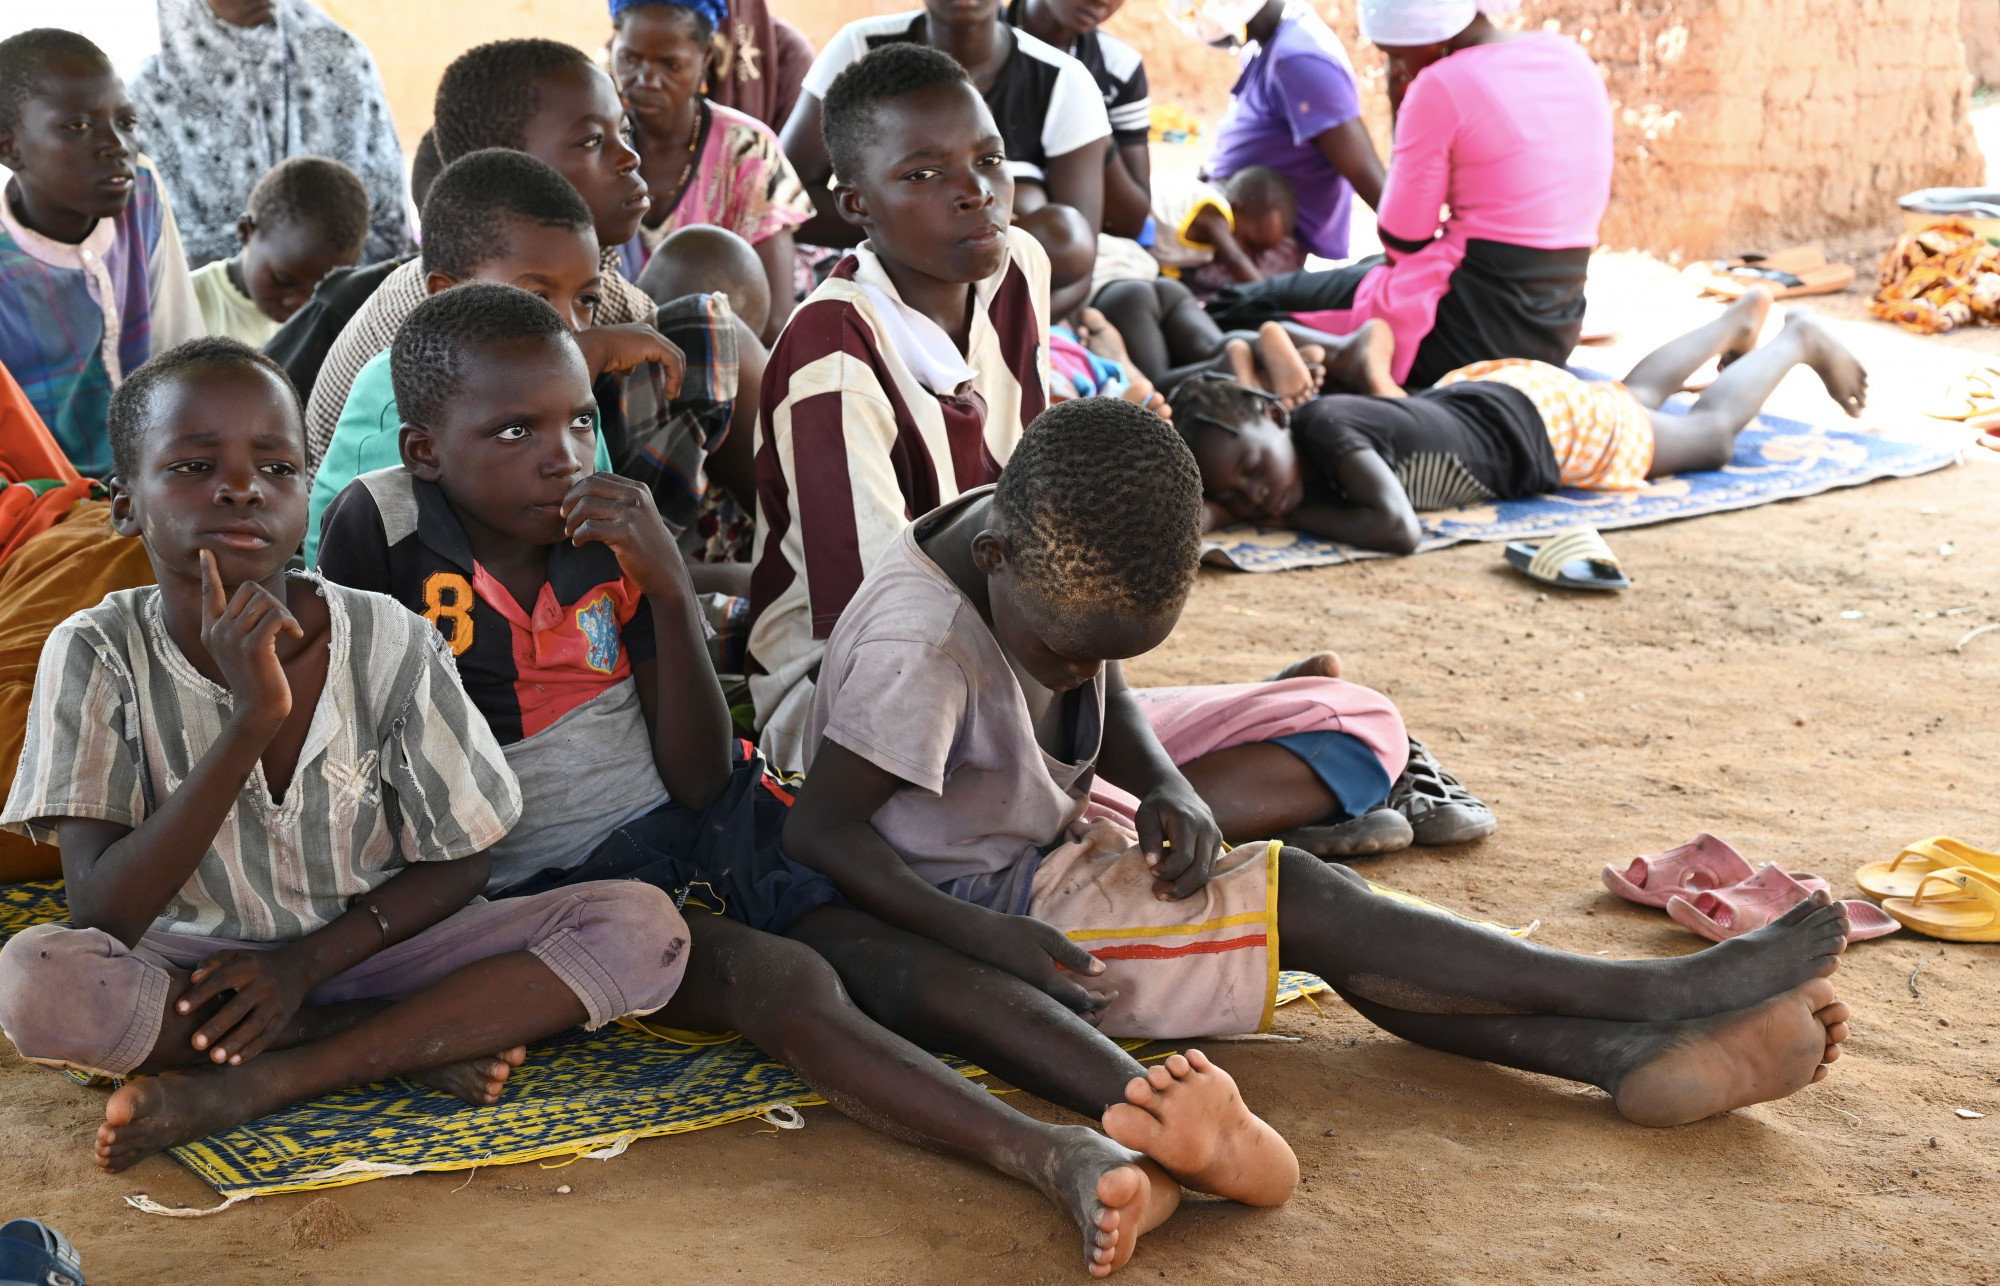 8 Million Children Have Been Forced Out of School by Growing Violence in West Africa